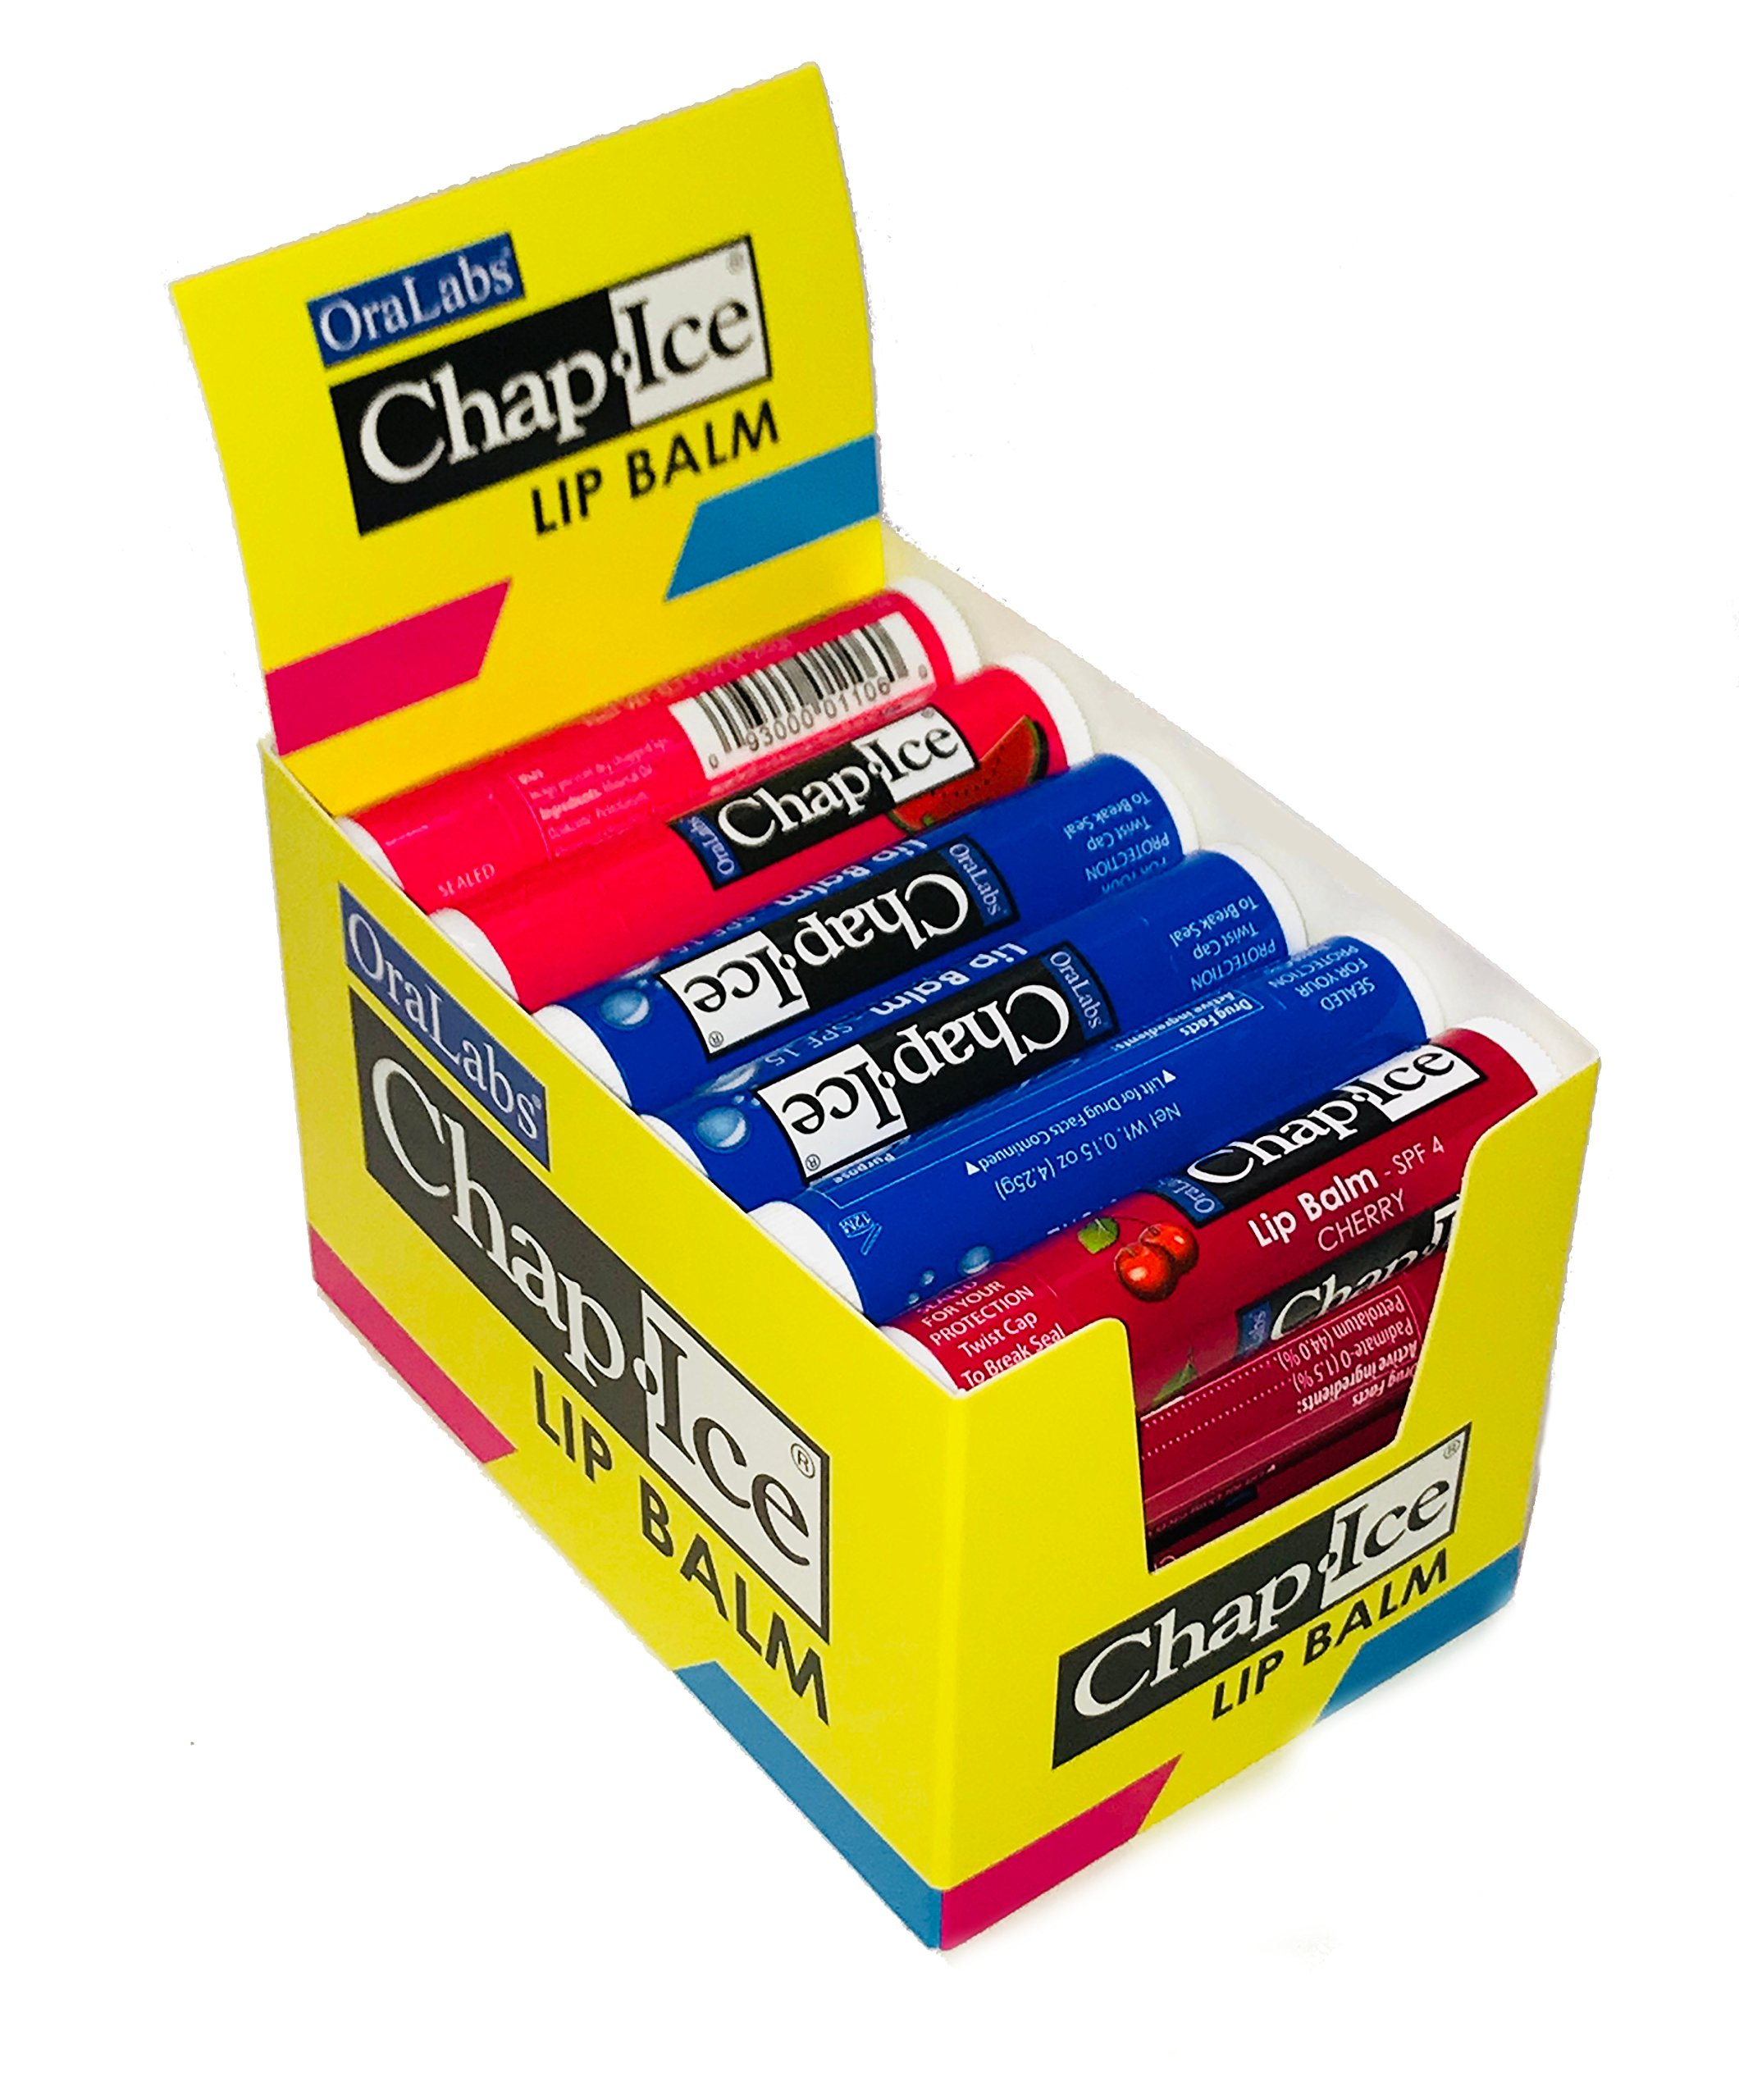 Chap-Ice | Assorted Lip Balm with Display Box - Moisture SPF-15, Cherry-SPF4, Watermelon -24 Count by CHAP-ICE